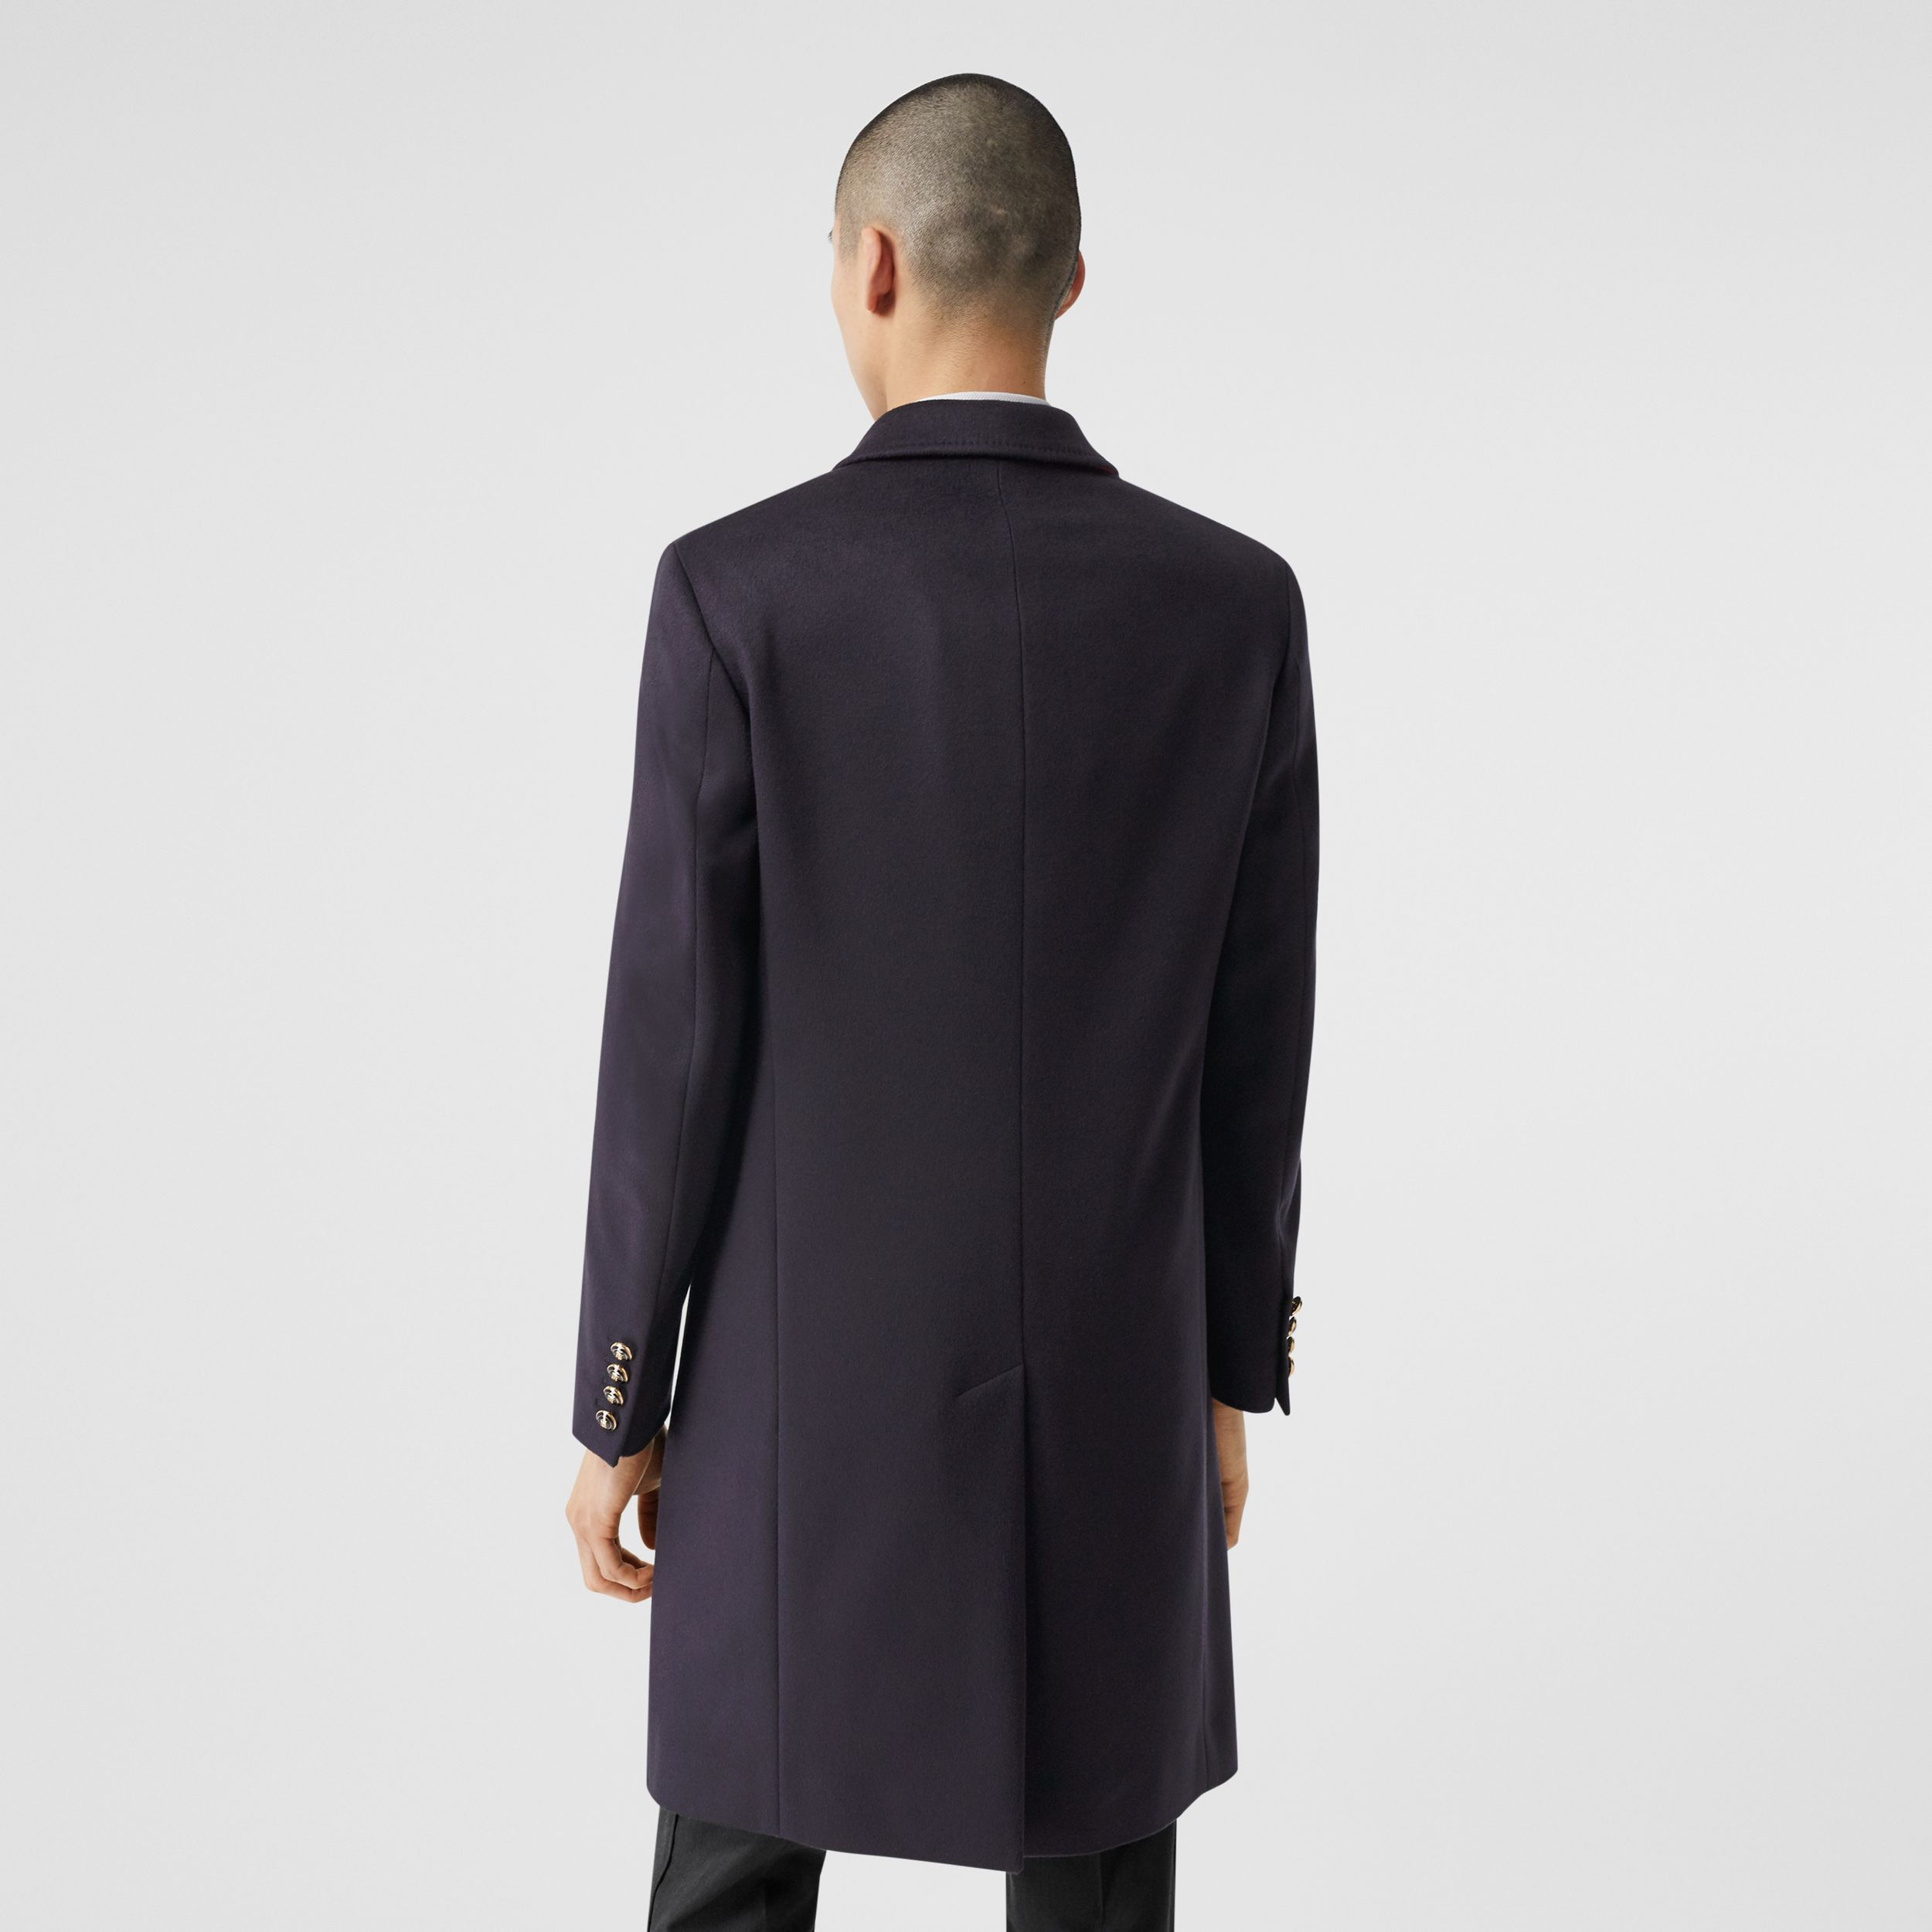 Button Detail Wool Cashmere Tailored Coat in Navy - Men | Burberry - 3